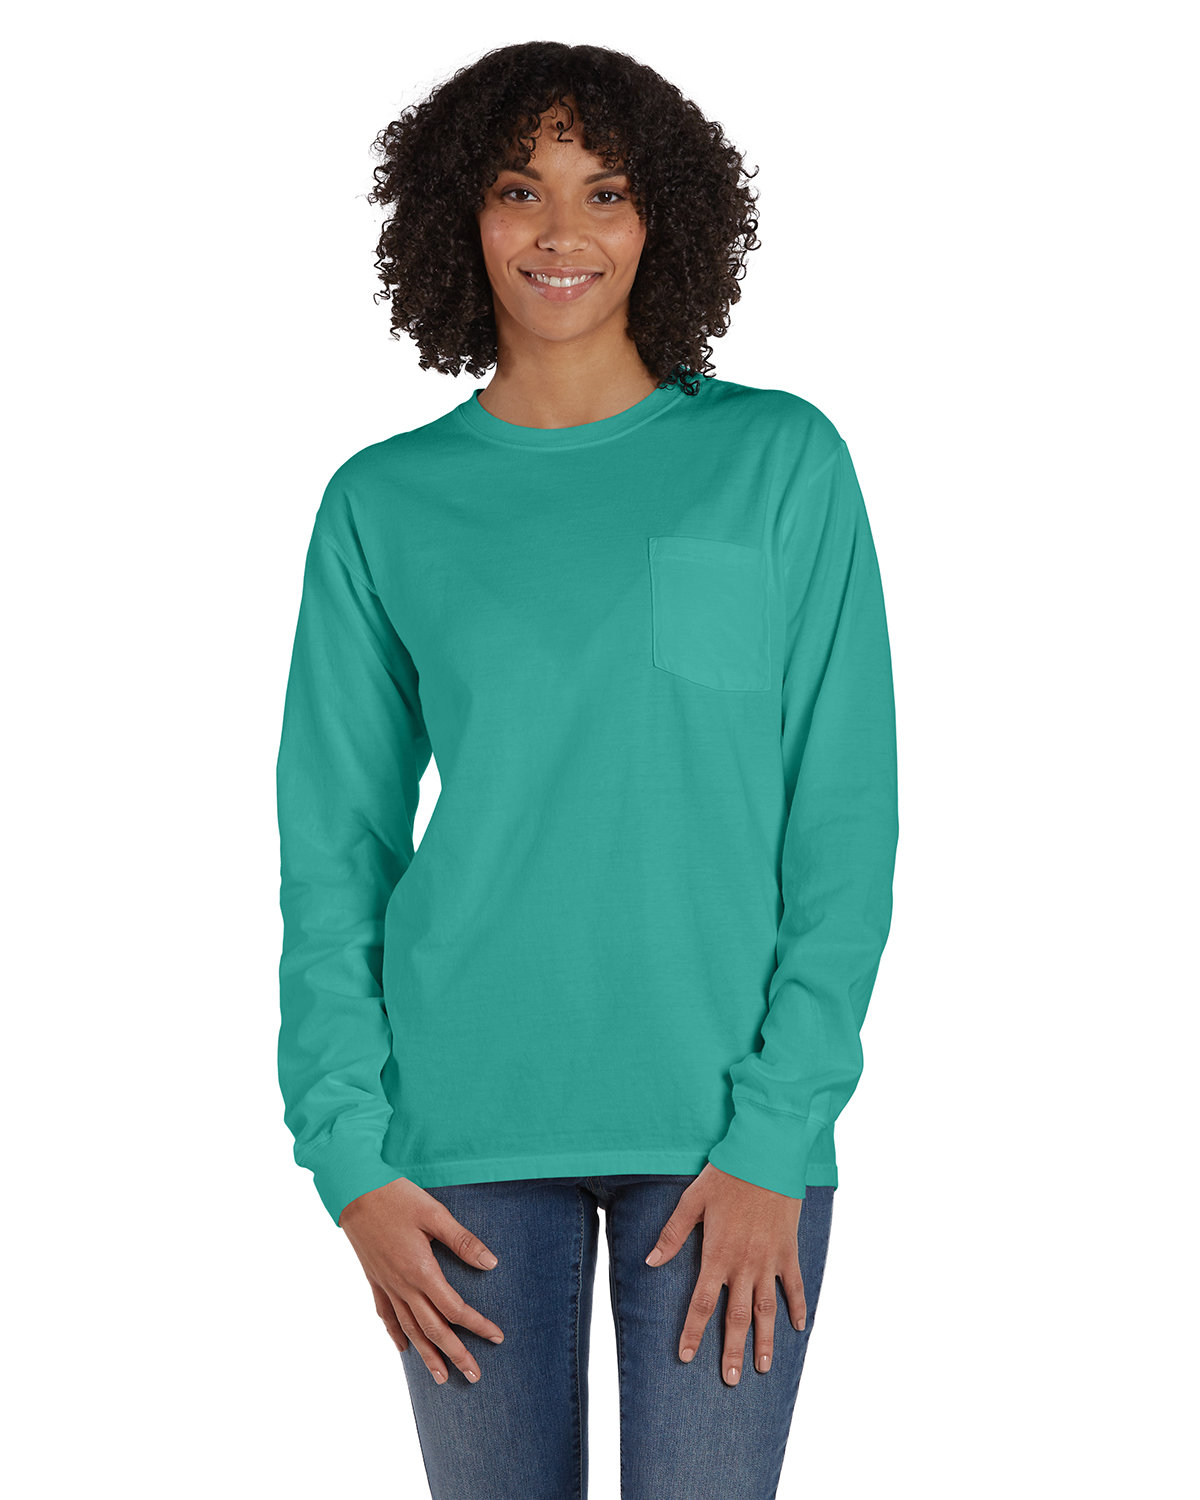 ComfortWash by Hanes Unisex Garment-Dyed Long-Sleeve T-Shirt with Pocket SPANISH MOSS